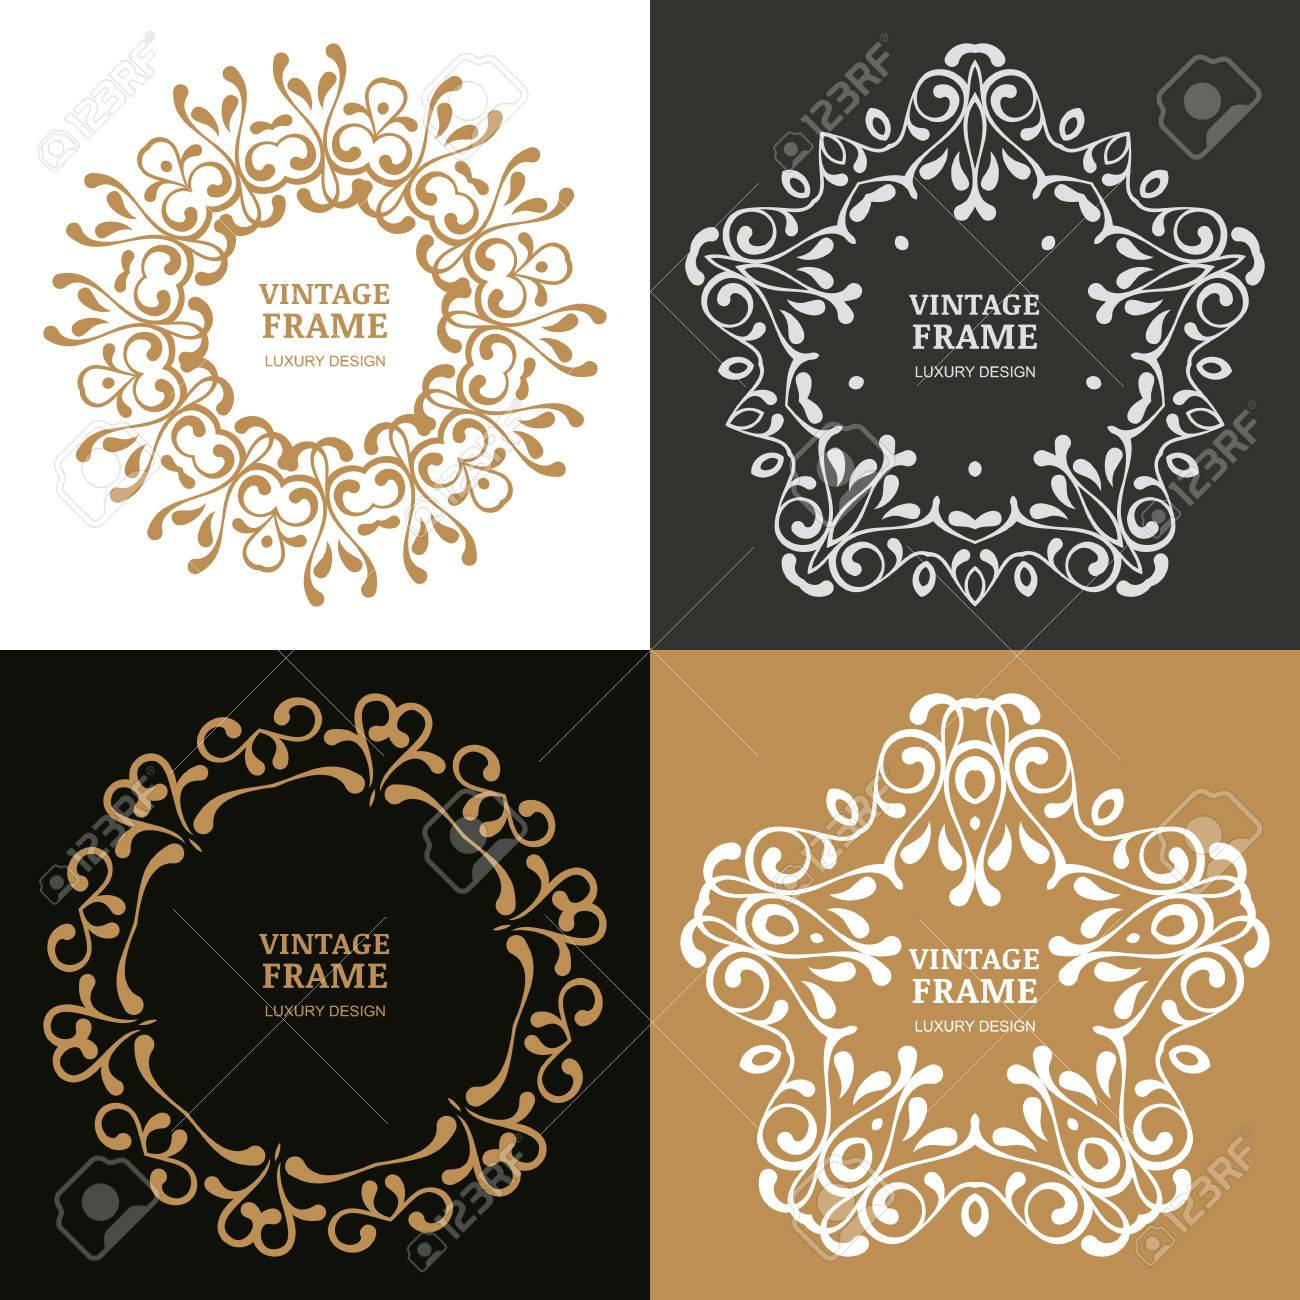 Set Of Vector Vintage Flourish Frames. Decorative Background. Design Concept  For Boutique, Hotel